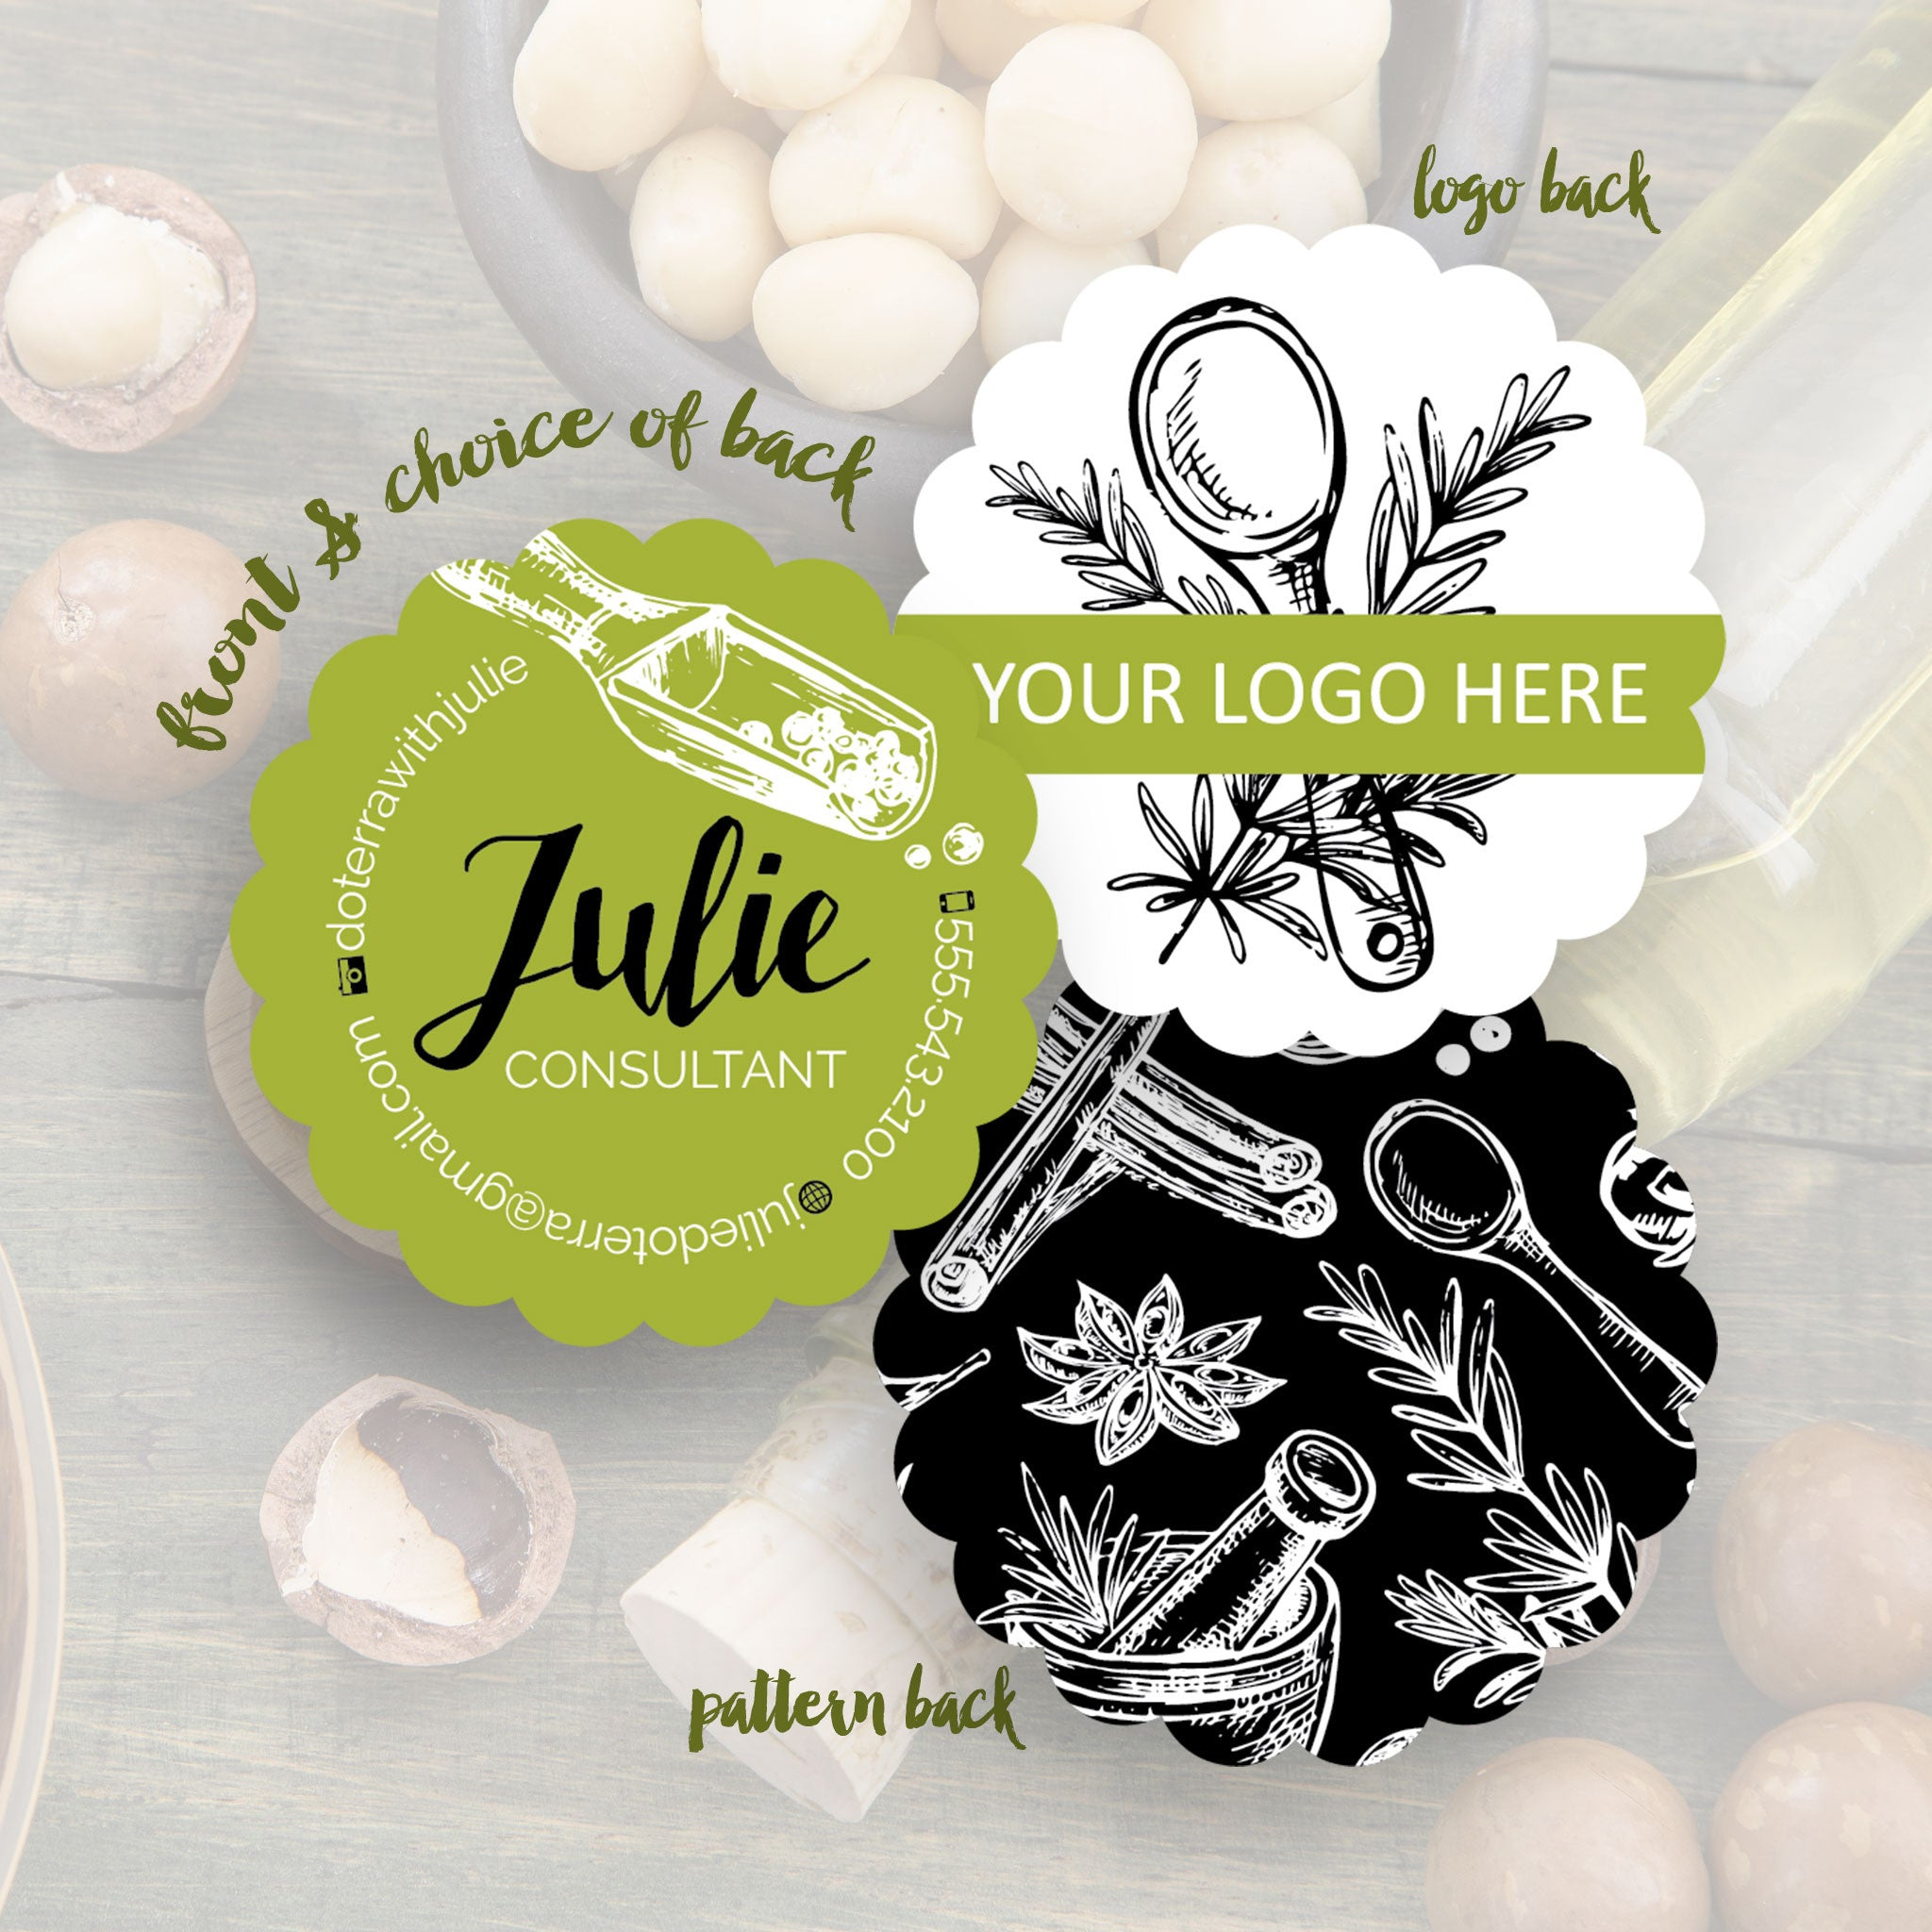 Doterra business cards creative designs templates julie business cards reheart Gallery